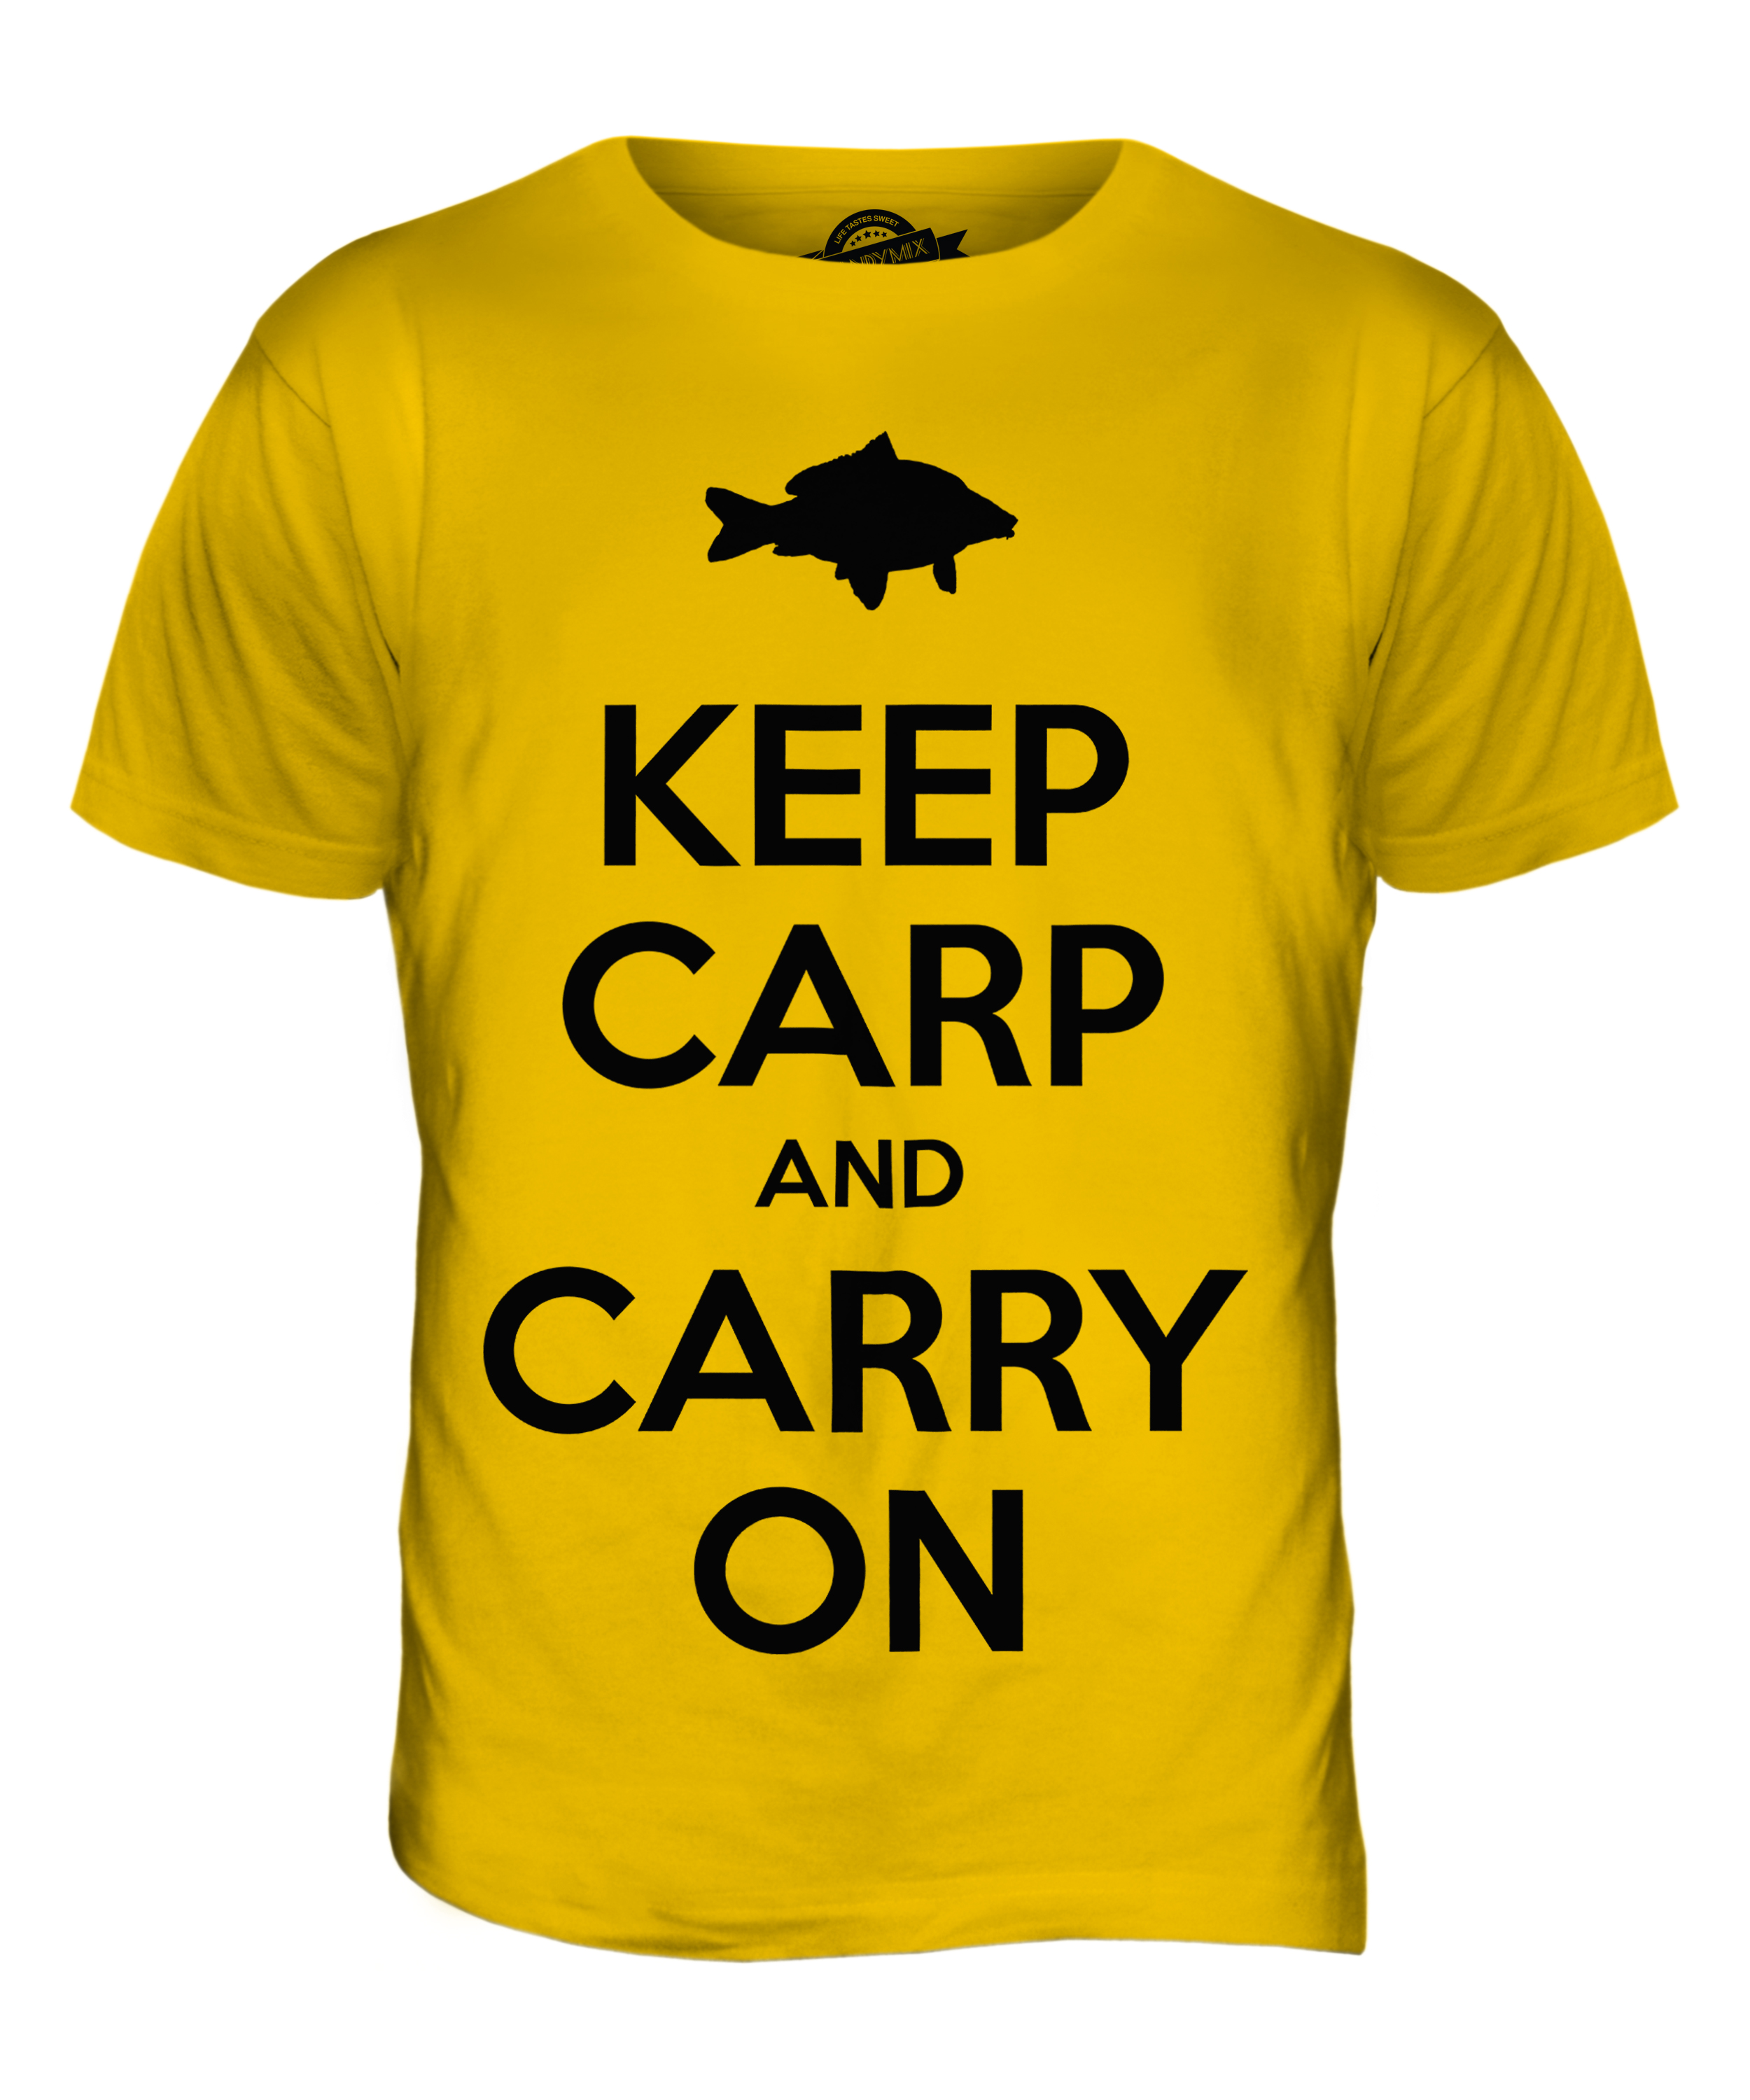 KEEP CARP AND CARRY ON MENS FUNNY PRINTED T-SHIRT FISHING GIFT TOP ...